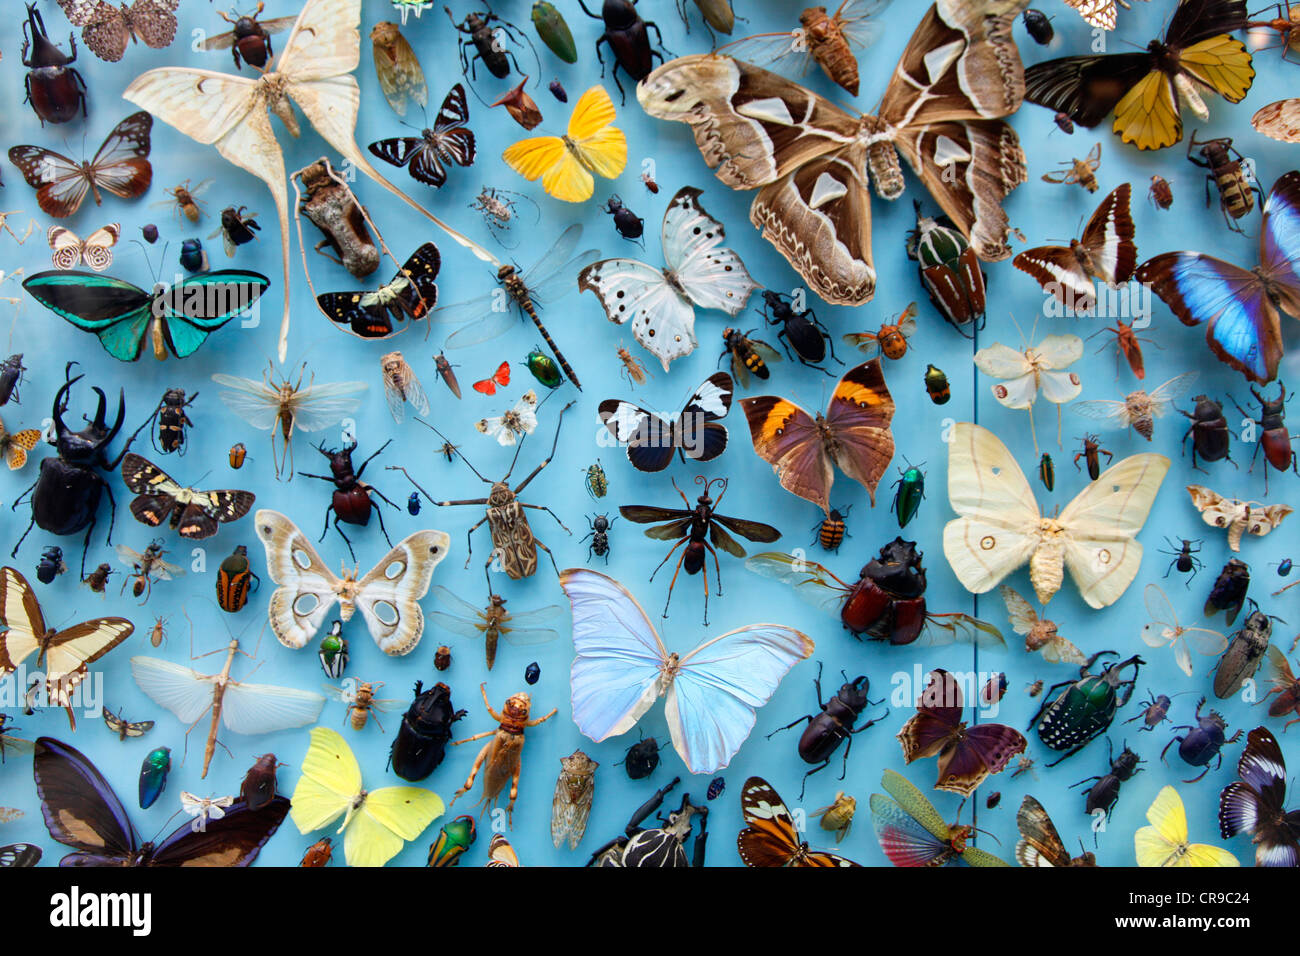 Collection of insects, moths, butterflies, beetles from around the world, the University Museum of Natural History, - Stock Image